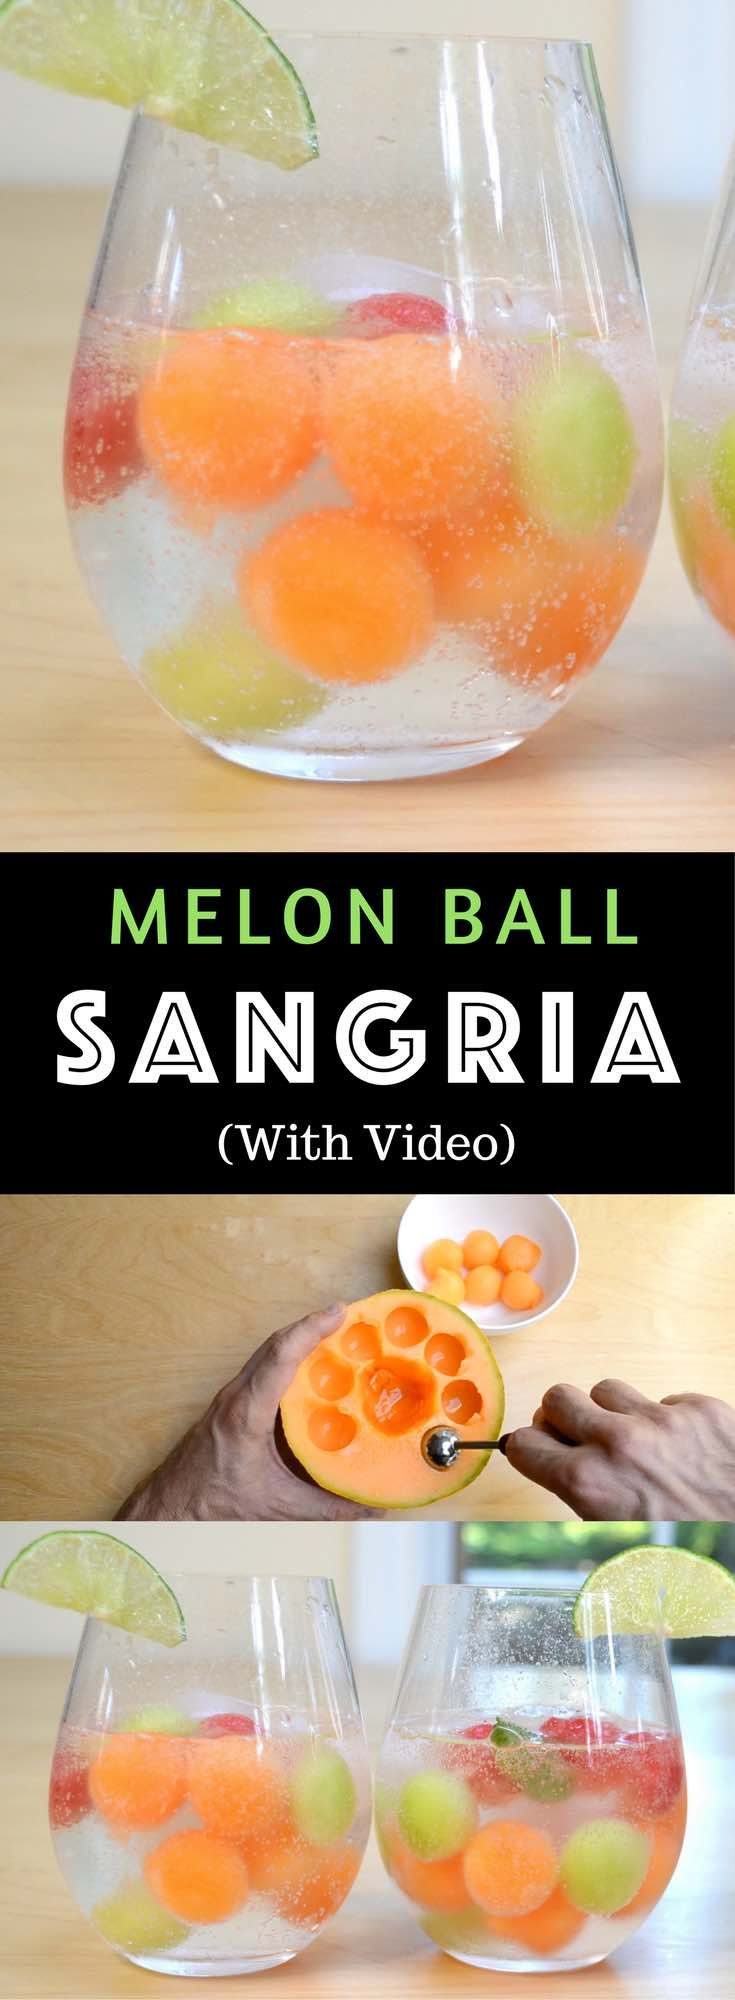 Easy Melon Ball Sangria – Refreshing and delicious melon ball sangria, the most beautiful sangria recipe! All you need is only a few ingredients: watermelon, cantaloupe and honeydew melons, moscato wine, sugar, lime, and sparkling water. Easy drinks recipe. Video recipe. | Tipbuzz.com #melonrecipes